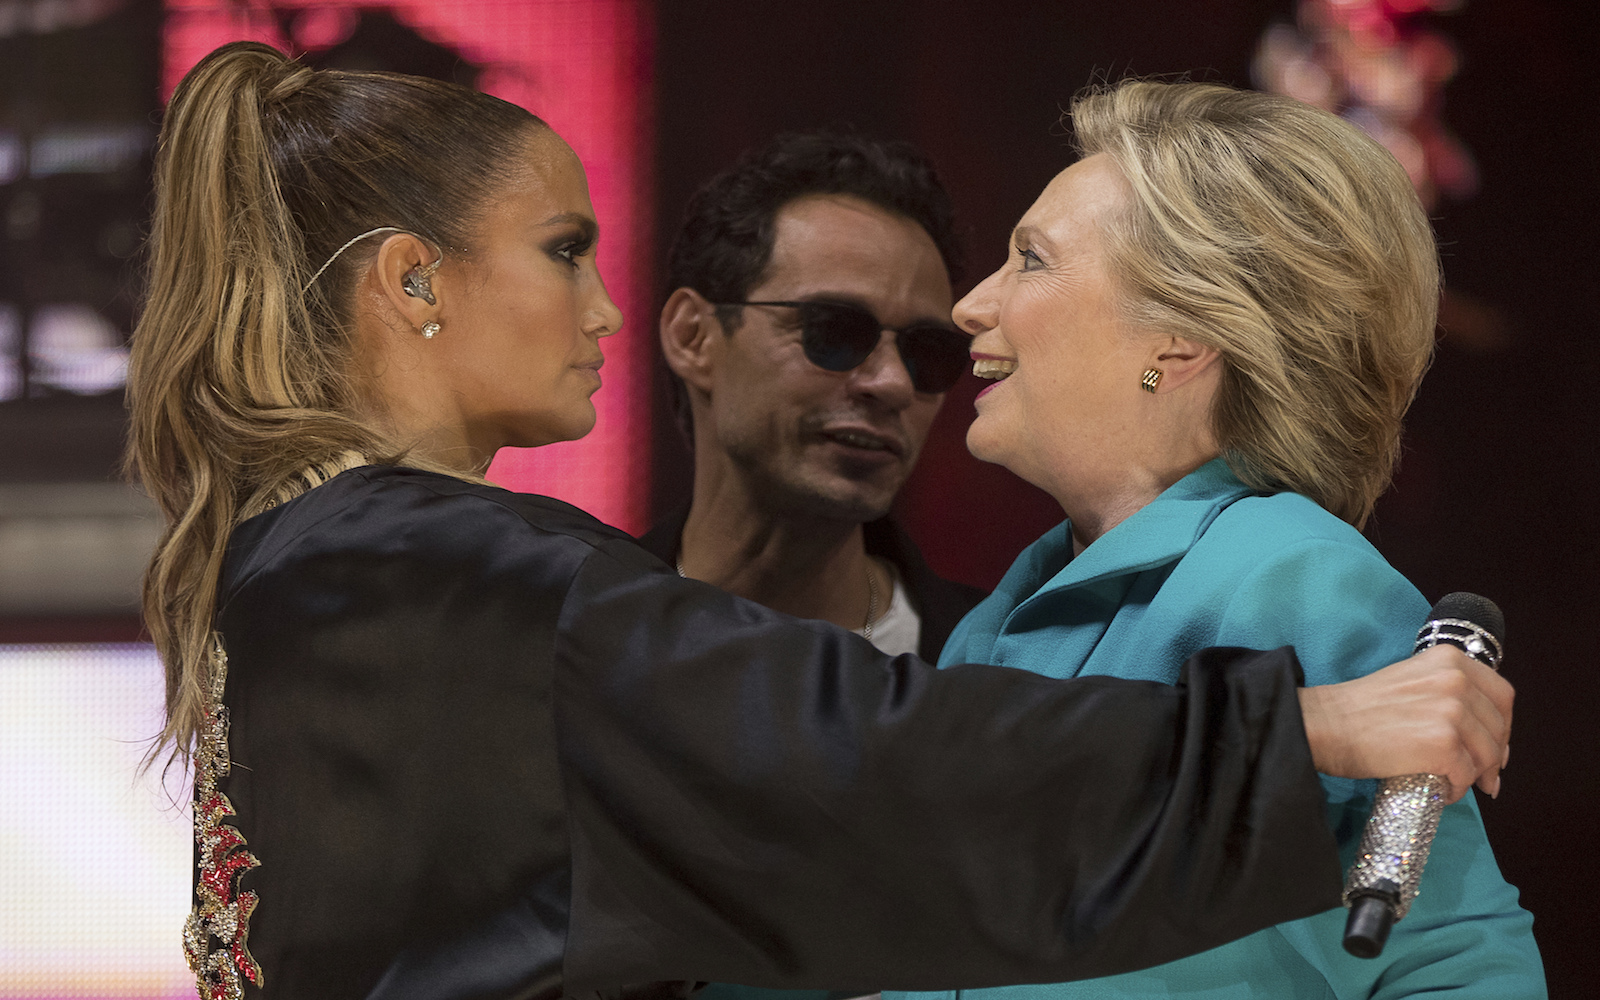 Democratic presidential candidate Hillary Clinton, right, accompanied by singer-songwriter Marc Anthony, center, hugs performer Jennifer Lopez, left, at a Get Out The Vote performance at Bayfront Park Amphitheater in Miami, Saturday, Oct. 29, 2016. (AP Photo/Andrew Harnik)